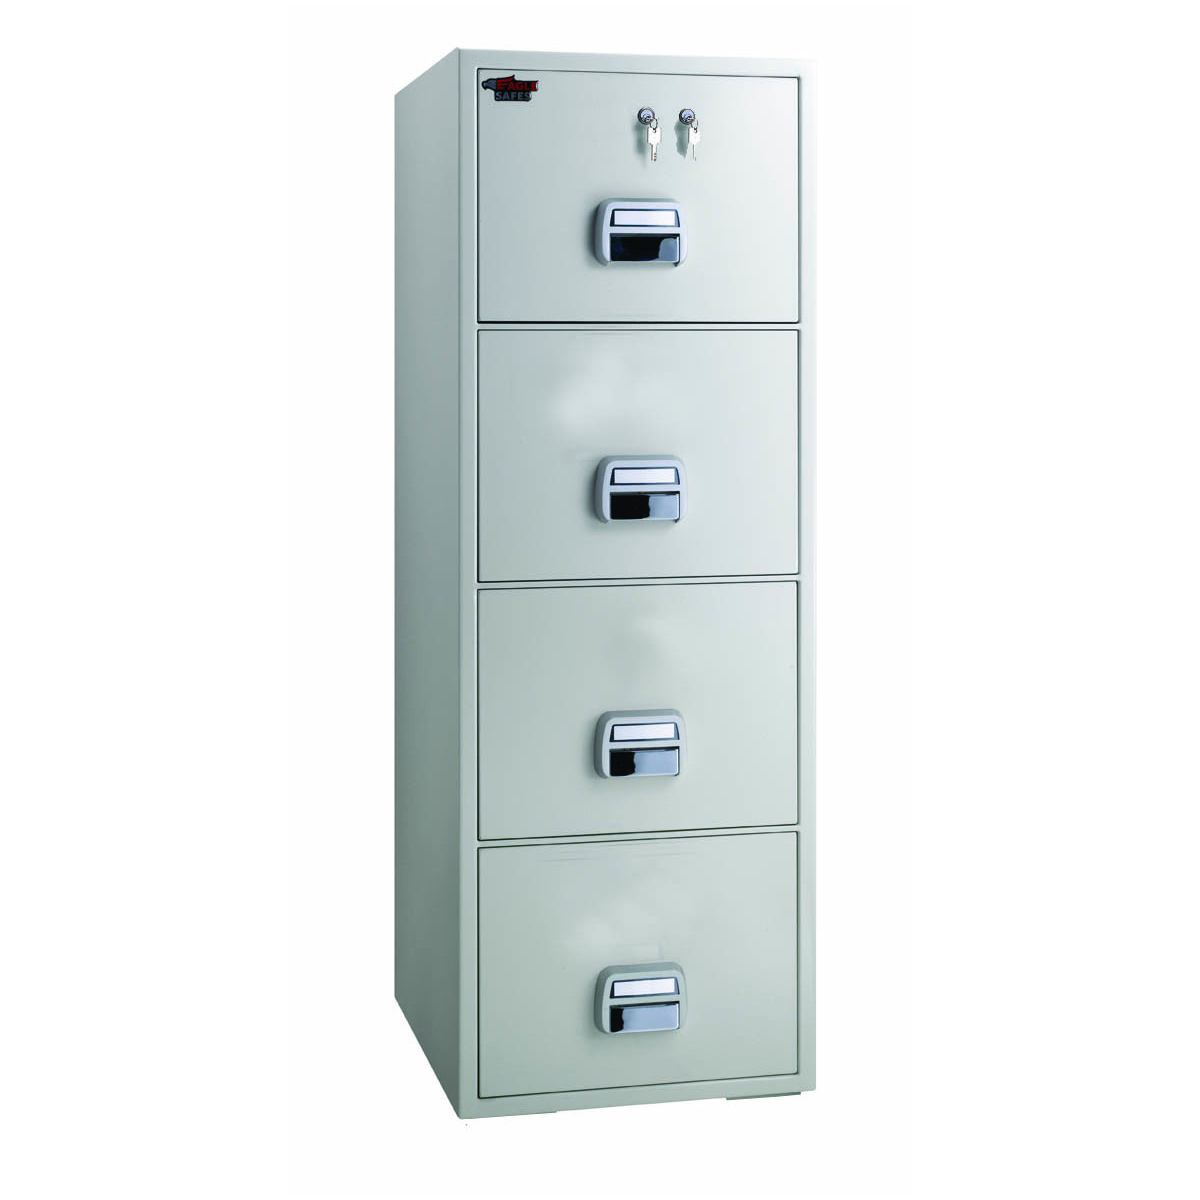 Eagle SF750-4TKX Fire Resistant 4 Drawer Filing Cabinet with 2 Key Locks